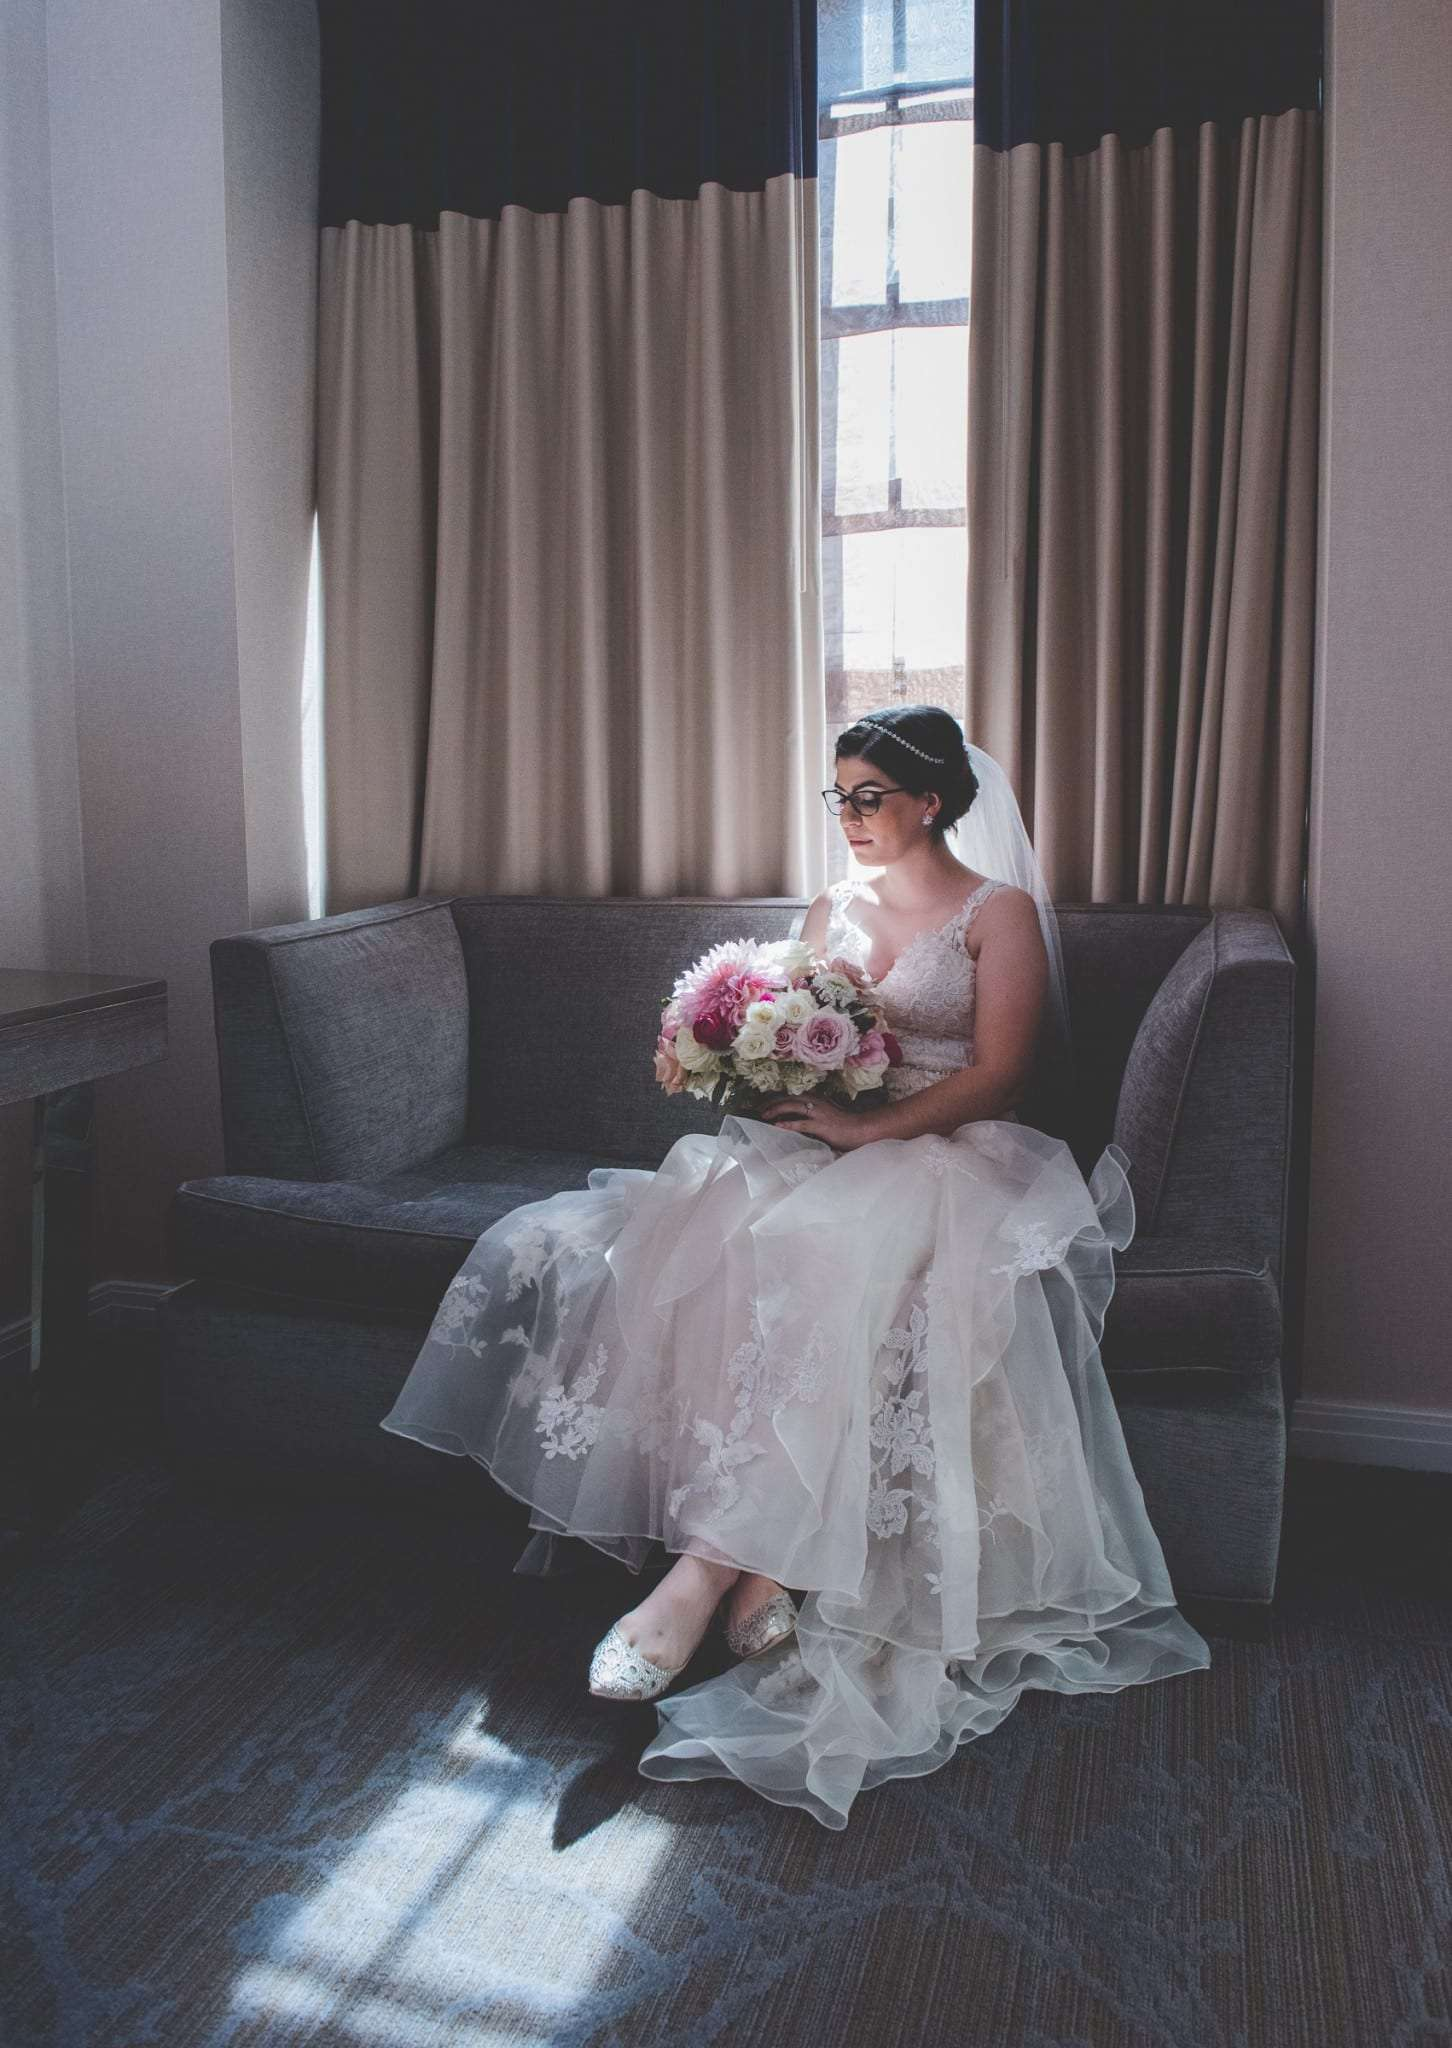 Bride in BHLDN wedding dress Philadelphia wedding photography